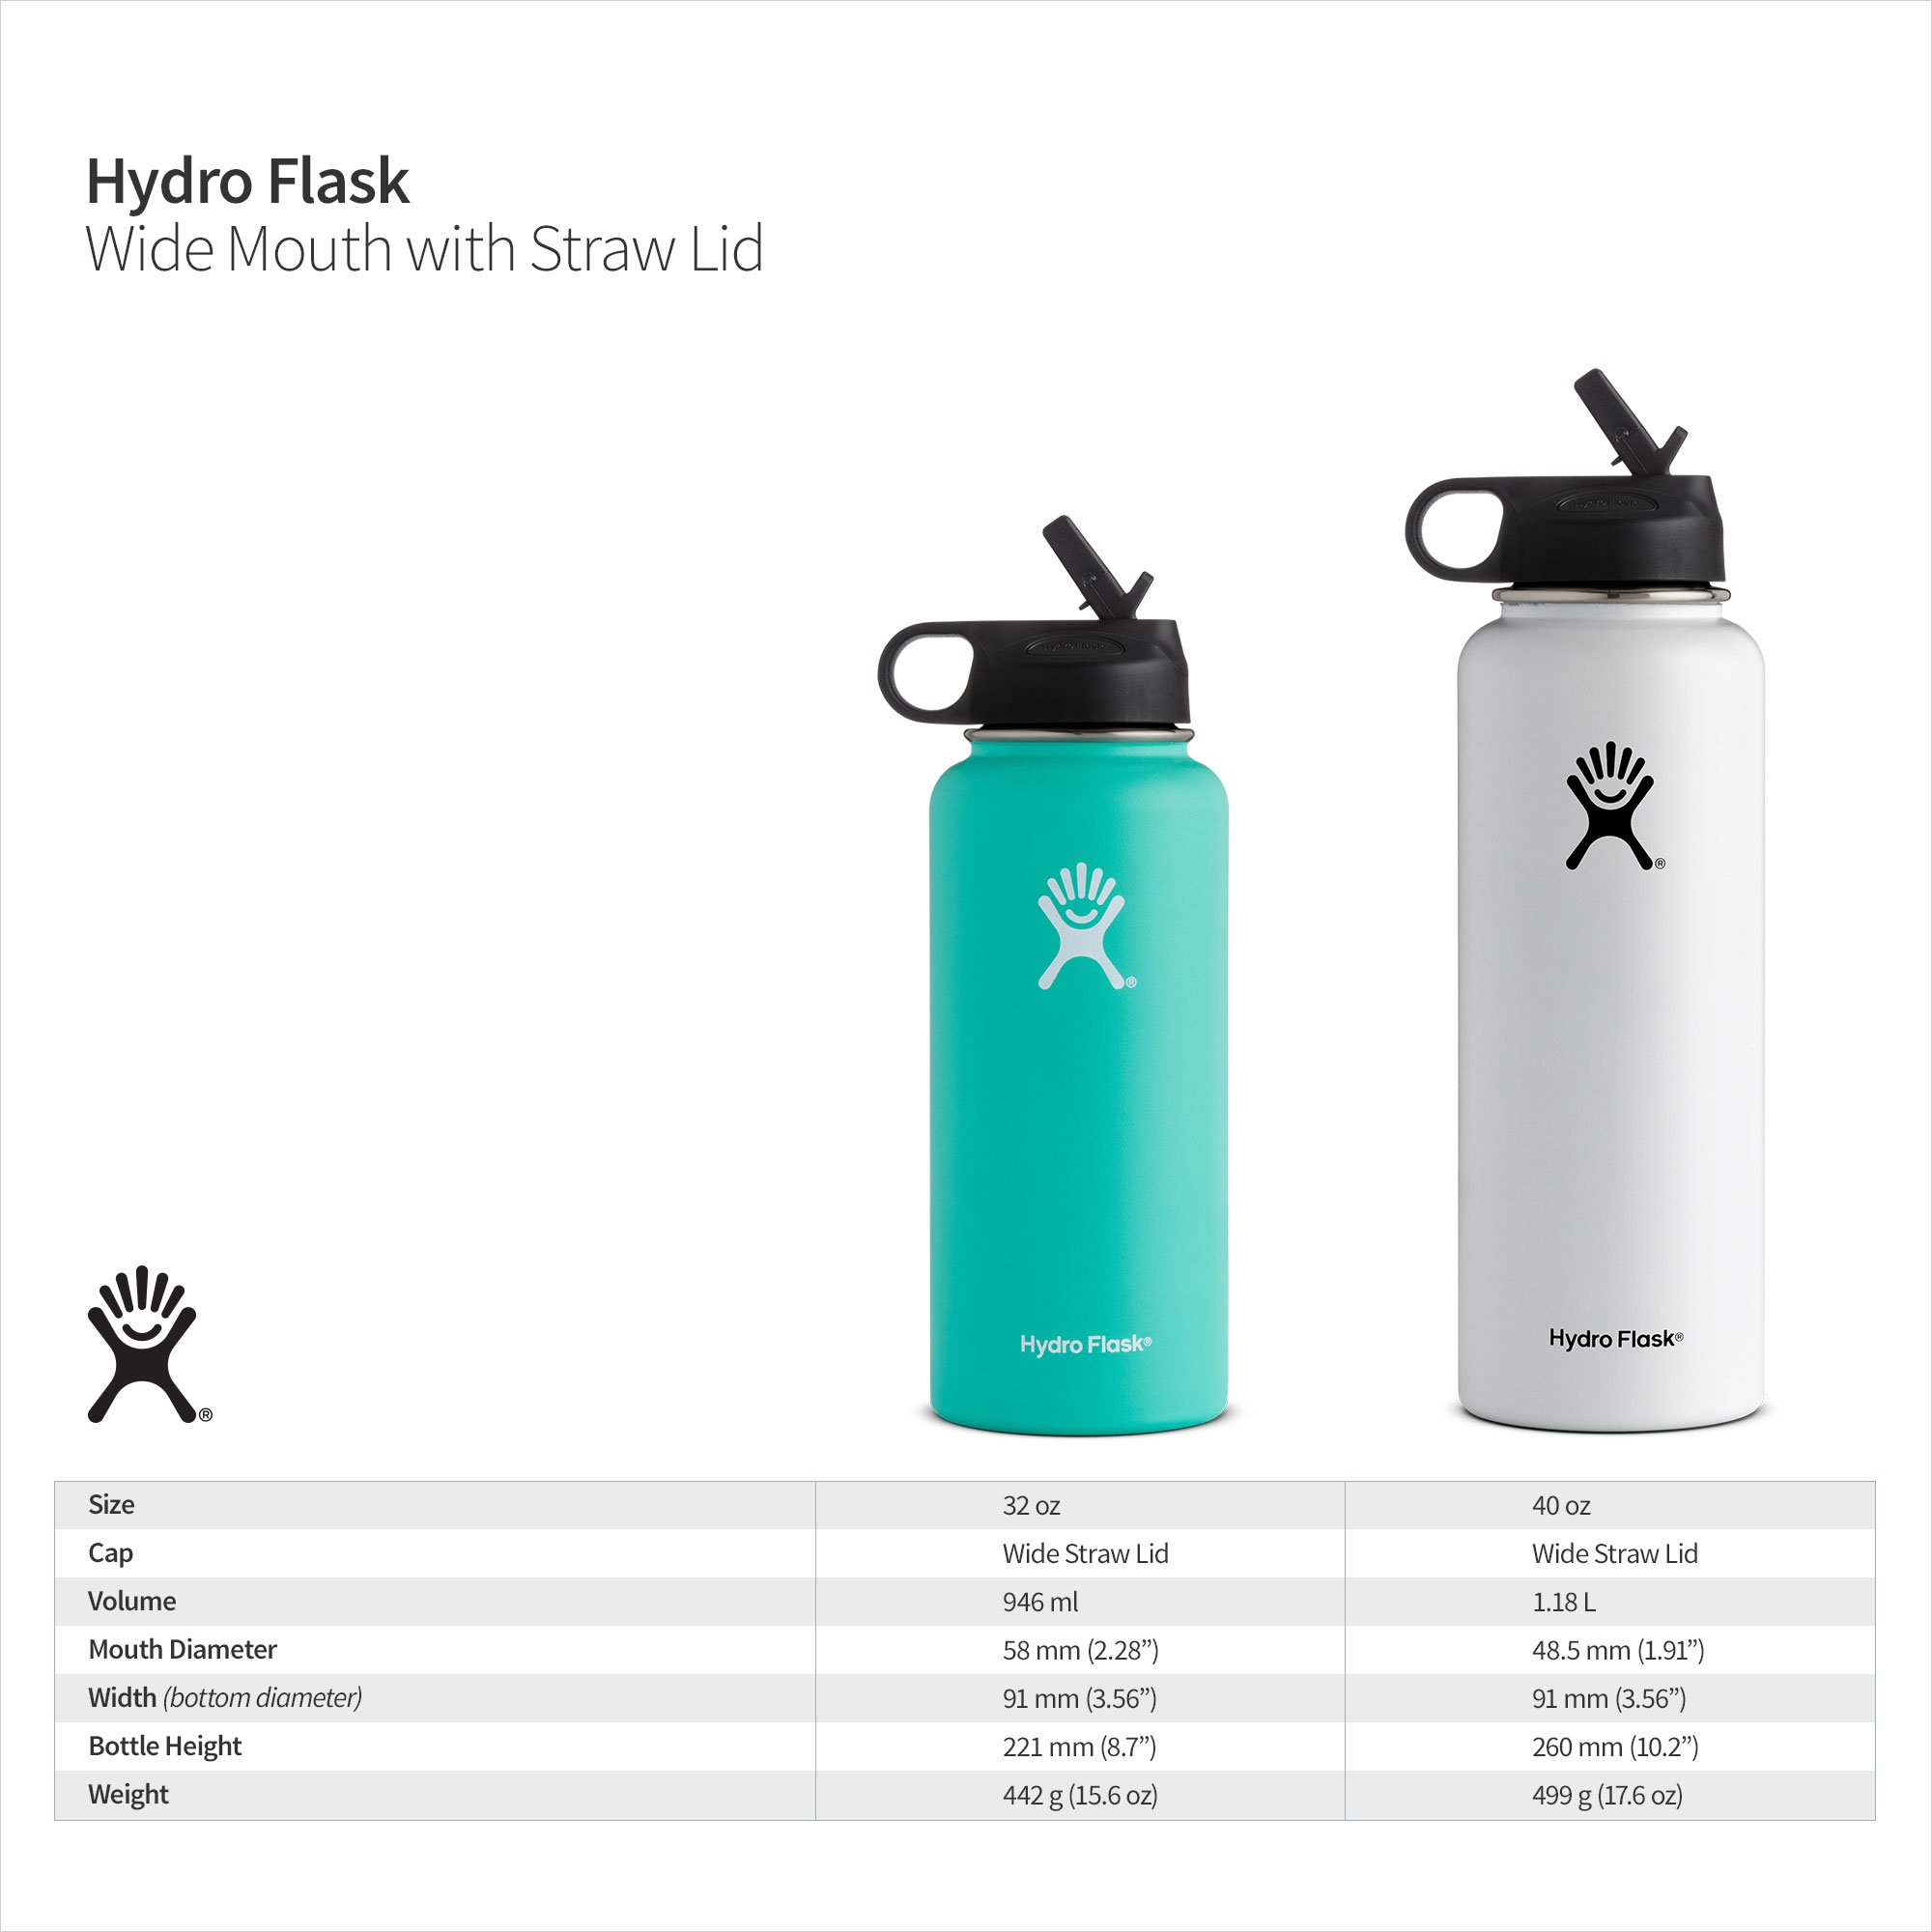 Hydro Flask Vacuum Insulated Stainless Steel Water Bottle Wide Mouth with Straw Lid (Pacific, 32-Ounce) by Hydro Flask (Image #3)